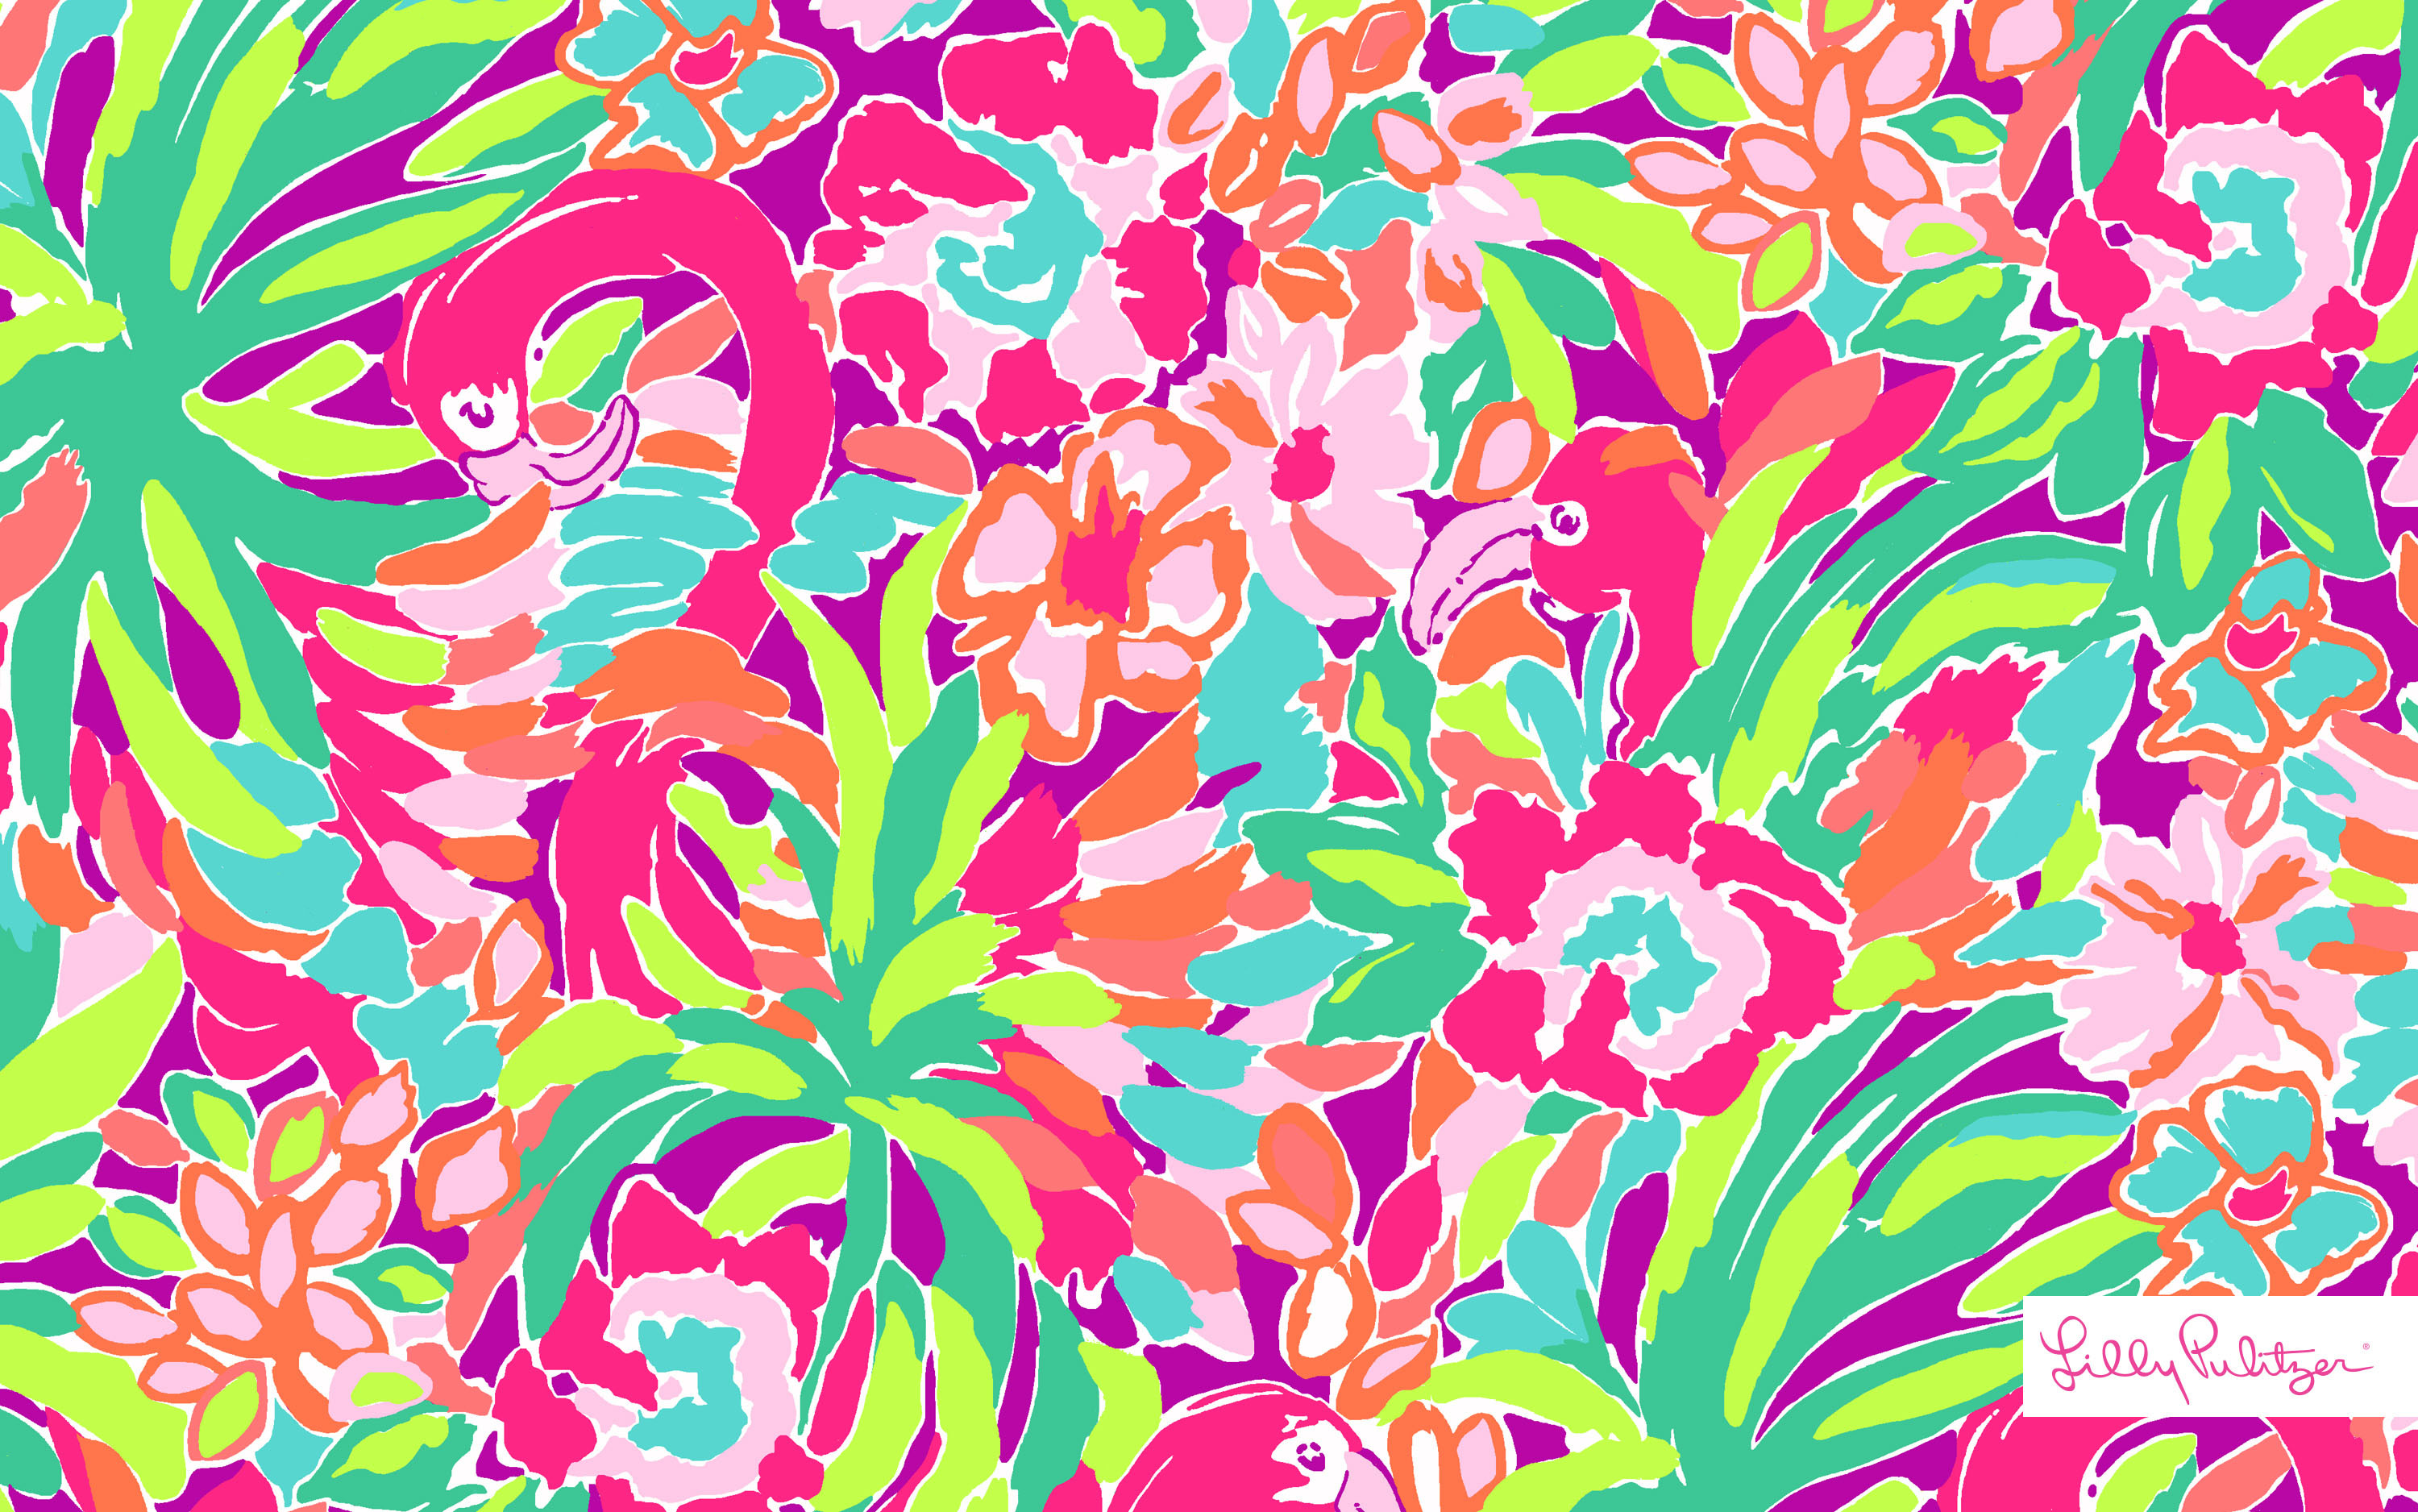 3000x1876 Lilly Pulitzer Iphone Wallpaper